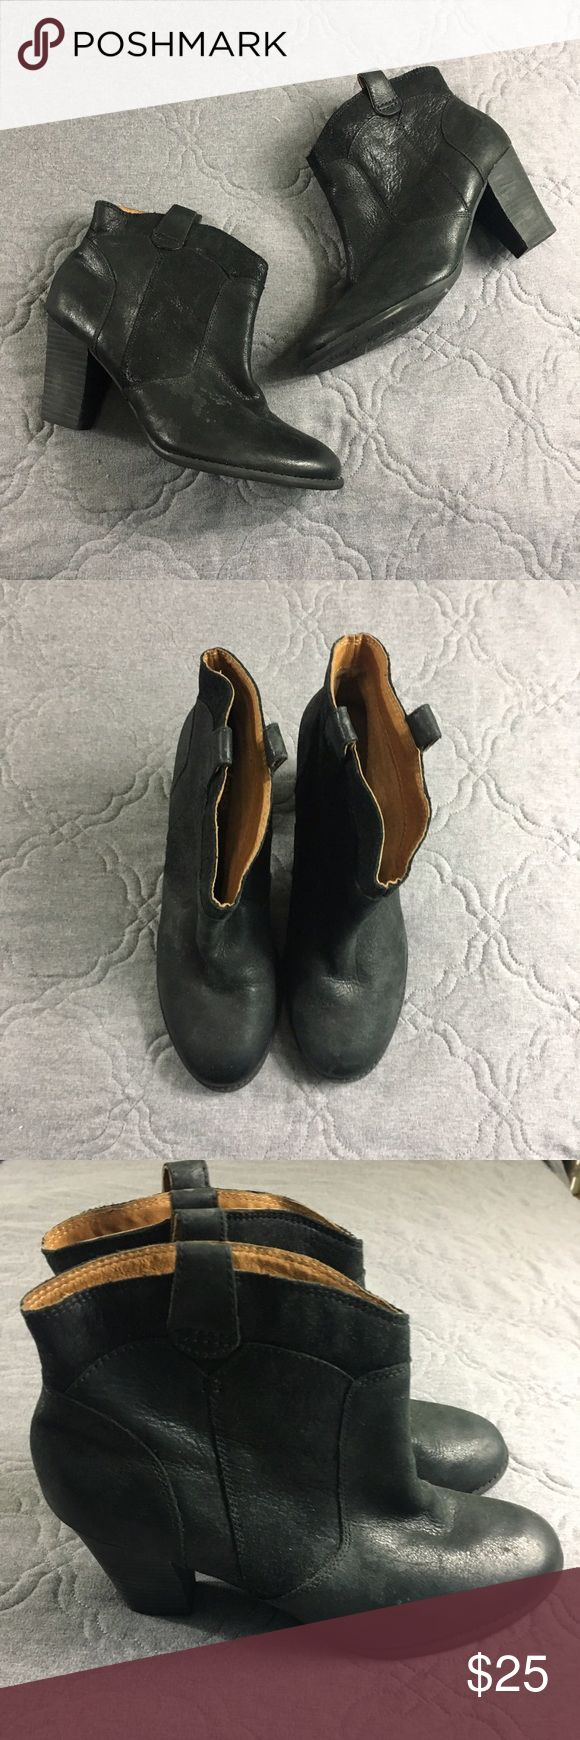 Clark's Indigo Shortie Booties Only worn once, very comfy. Would be really cute with dresses. No trades. Clarks Shoes Ankle Boots & Booties